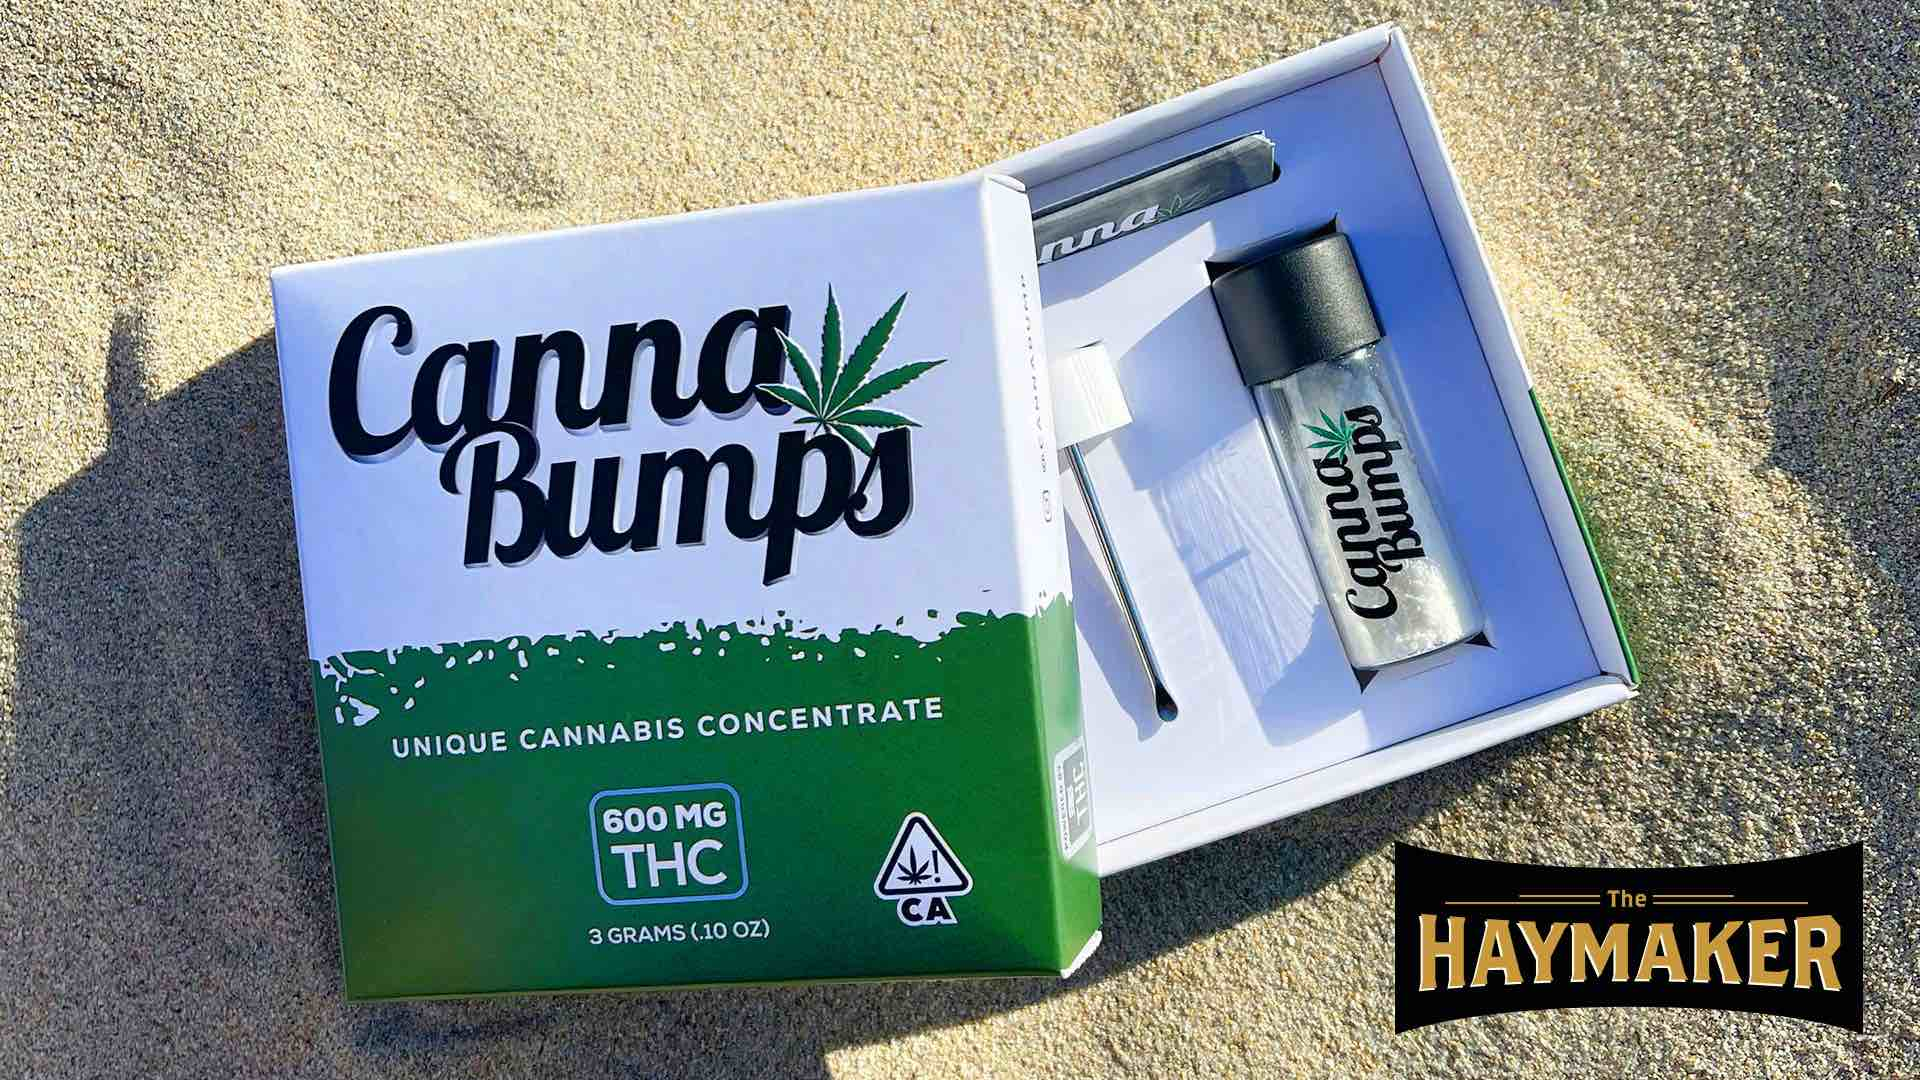 photo of Neat idea, Canna Bumps: Thanks for keeping marijuana illegal image